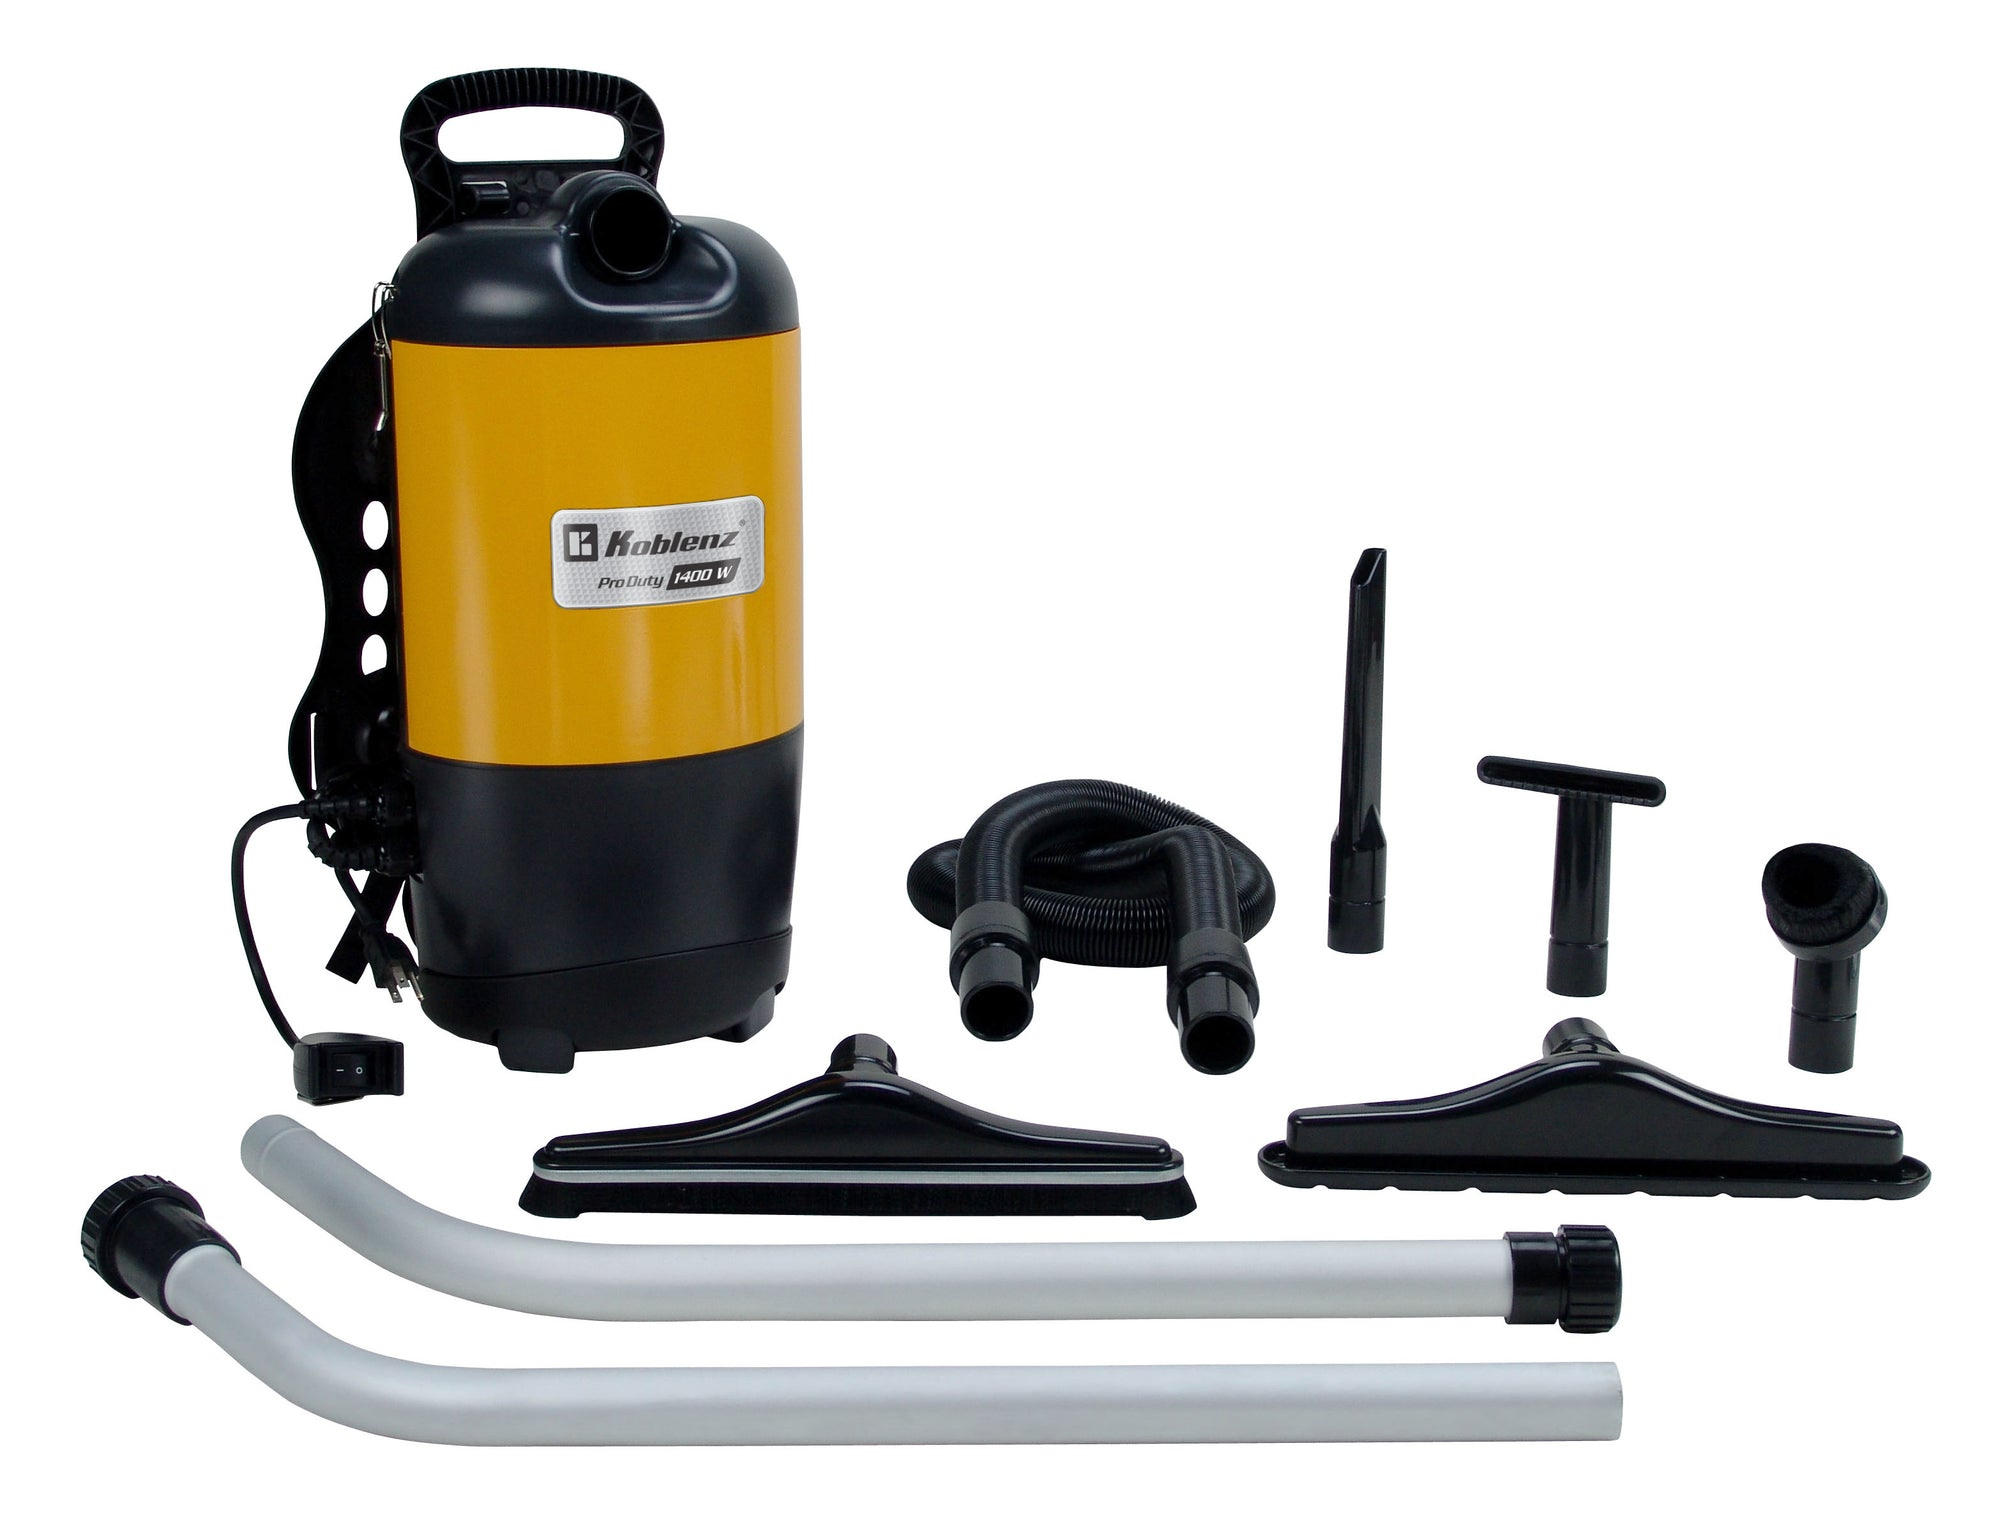 BP-1400 Koblenz Commercial Backpack Vacuum - Cleaning Ideas